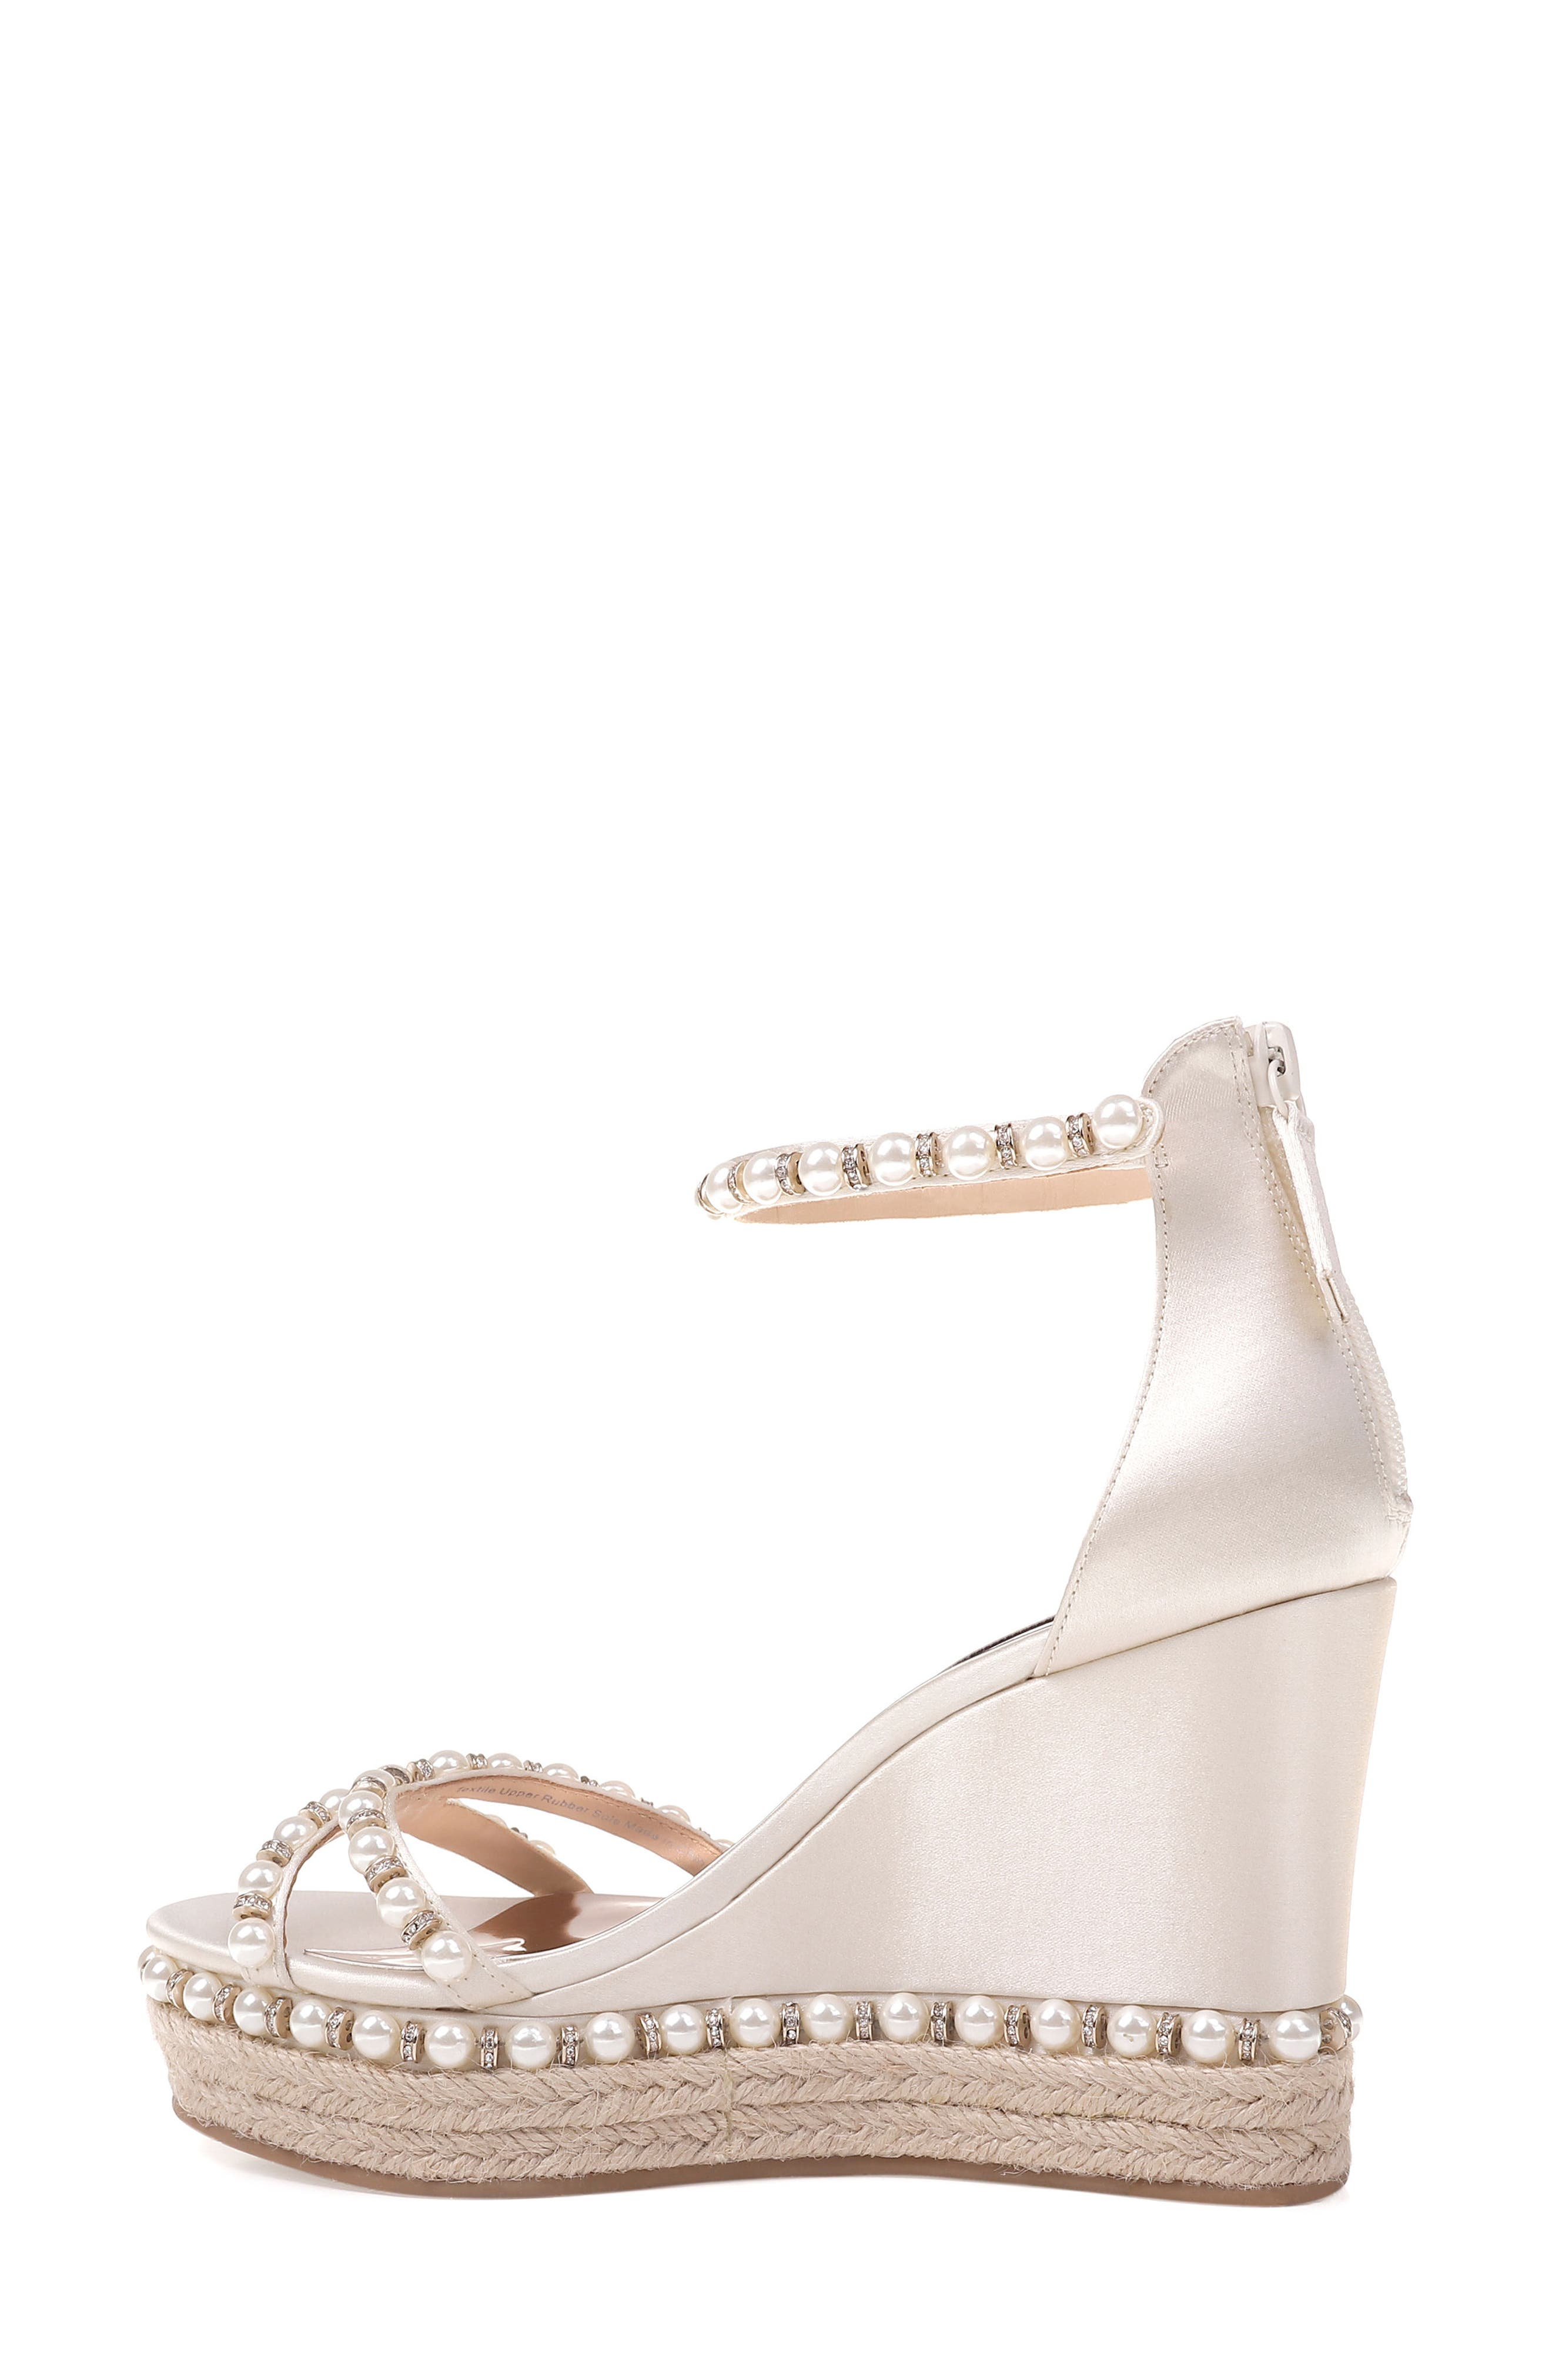 Sloan Wedge Sandal,                             Alternate thumbnail 2, color,                             Ivory Satin